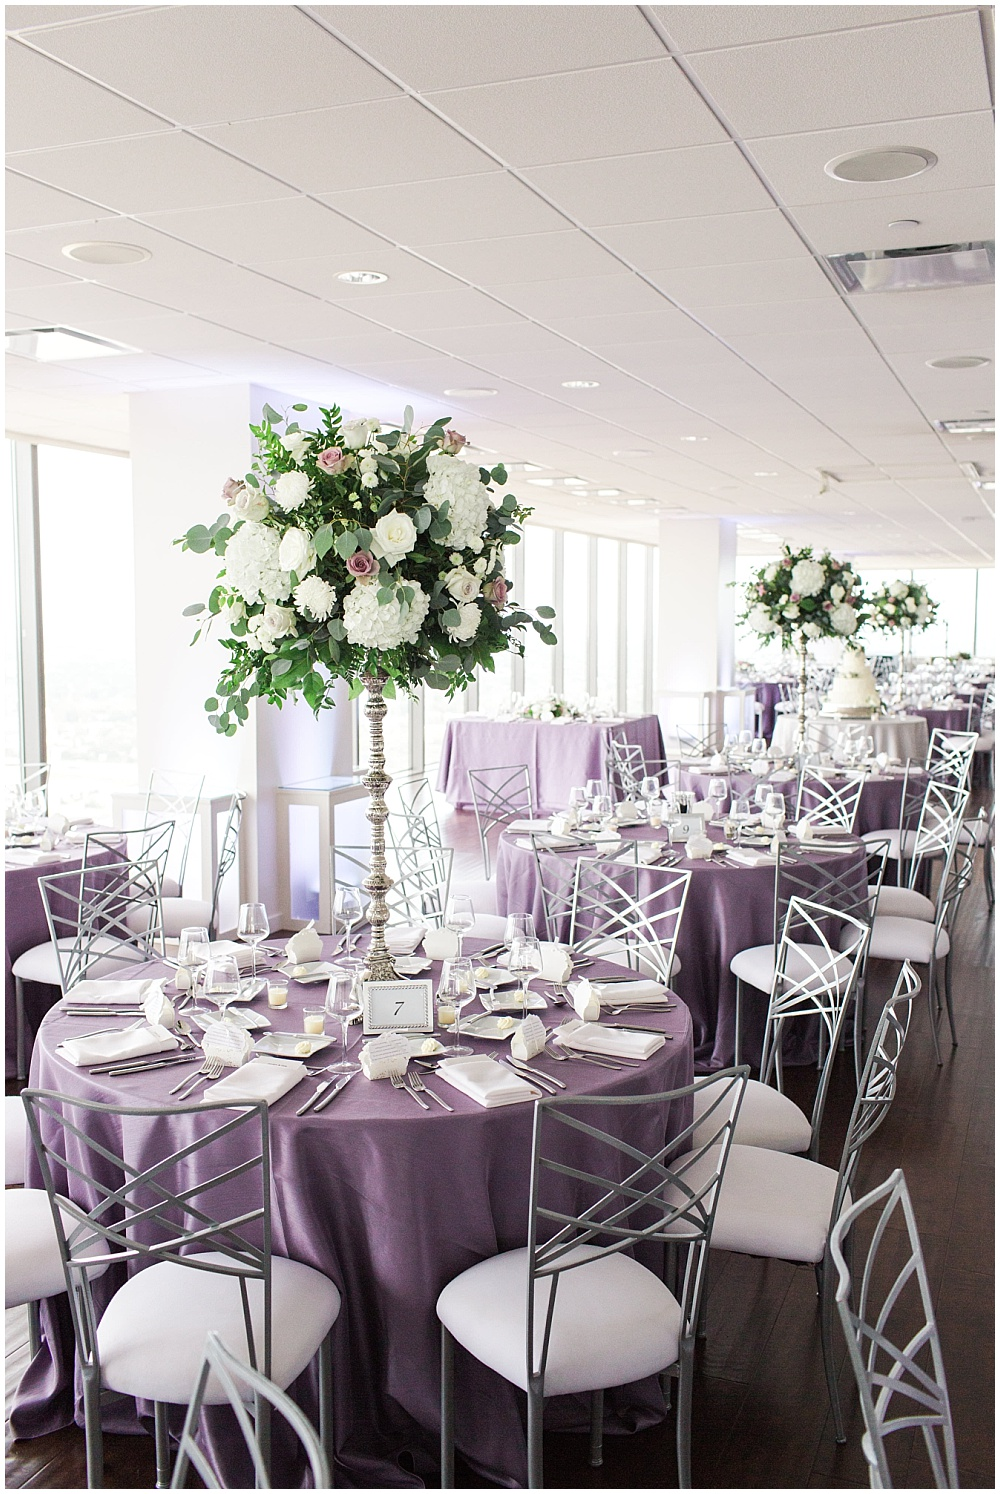 Purple and white wedding reception tablescape | D'Amore Wedding by Ivan & Louise Images & Jessica Dum Wedding Coordination